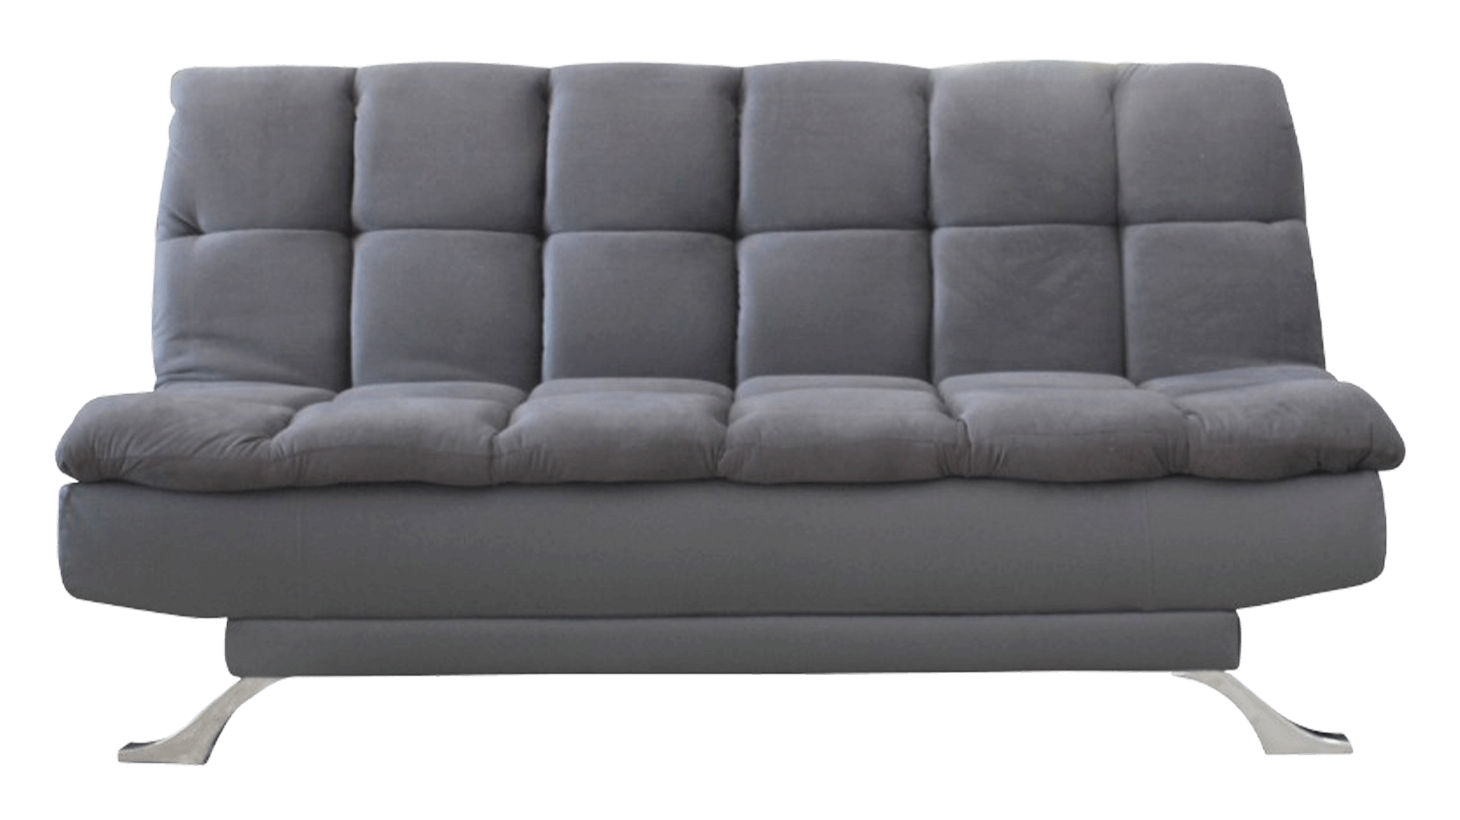 Picture of: Buy Sleeper Couches Sofa Beds Or Futons Online